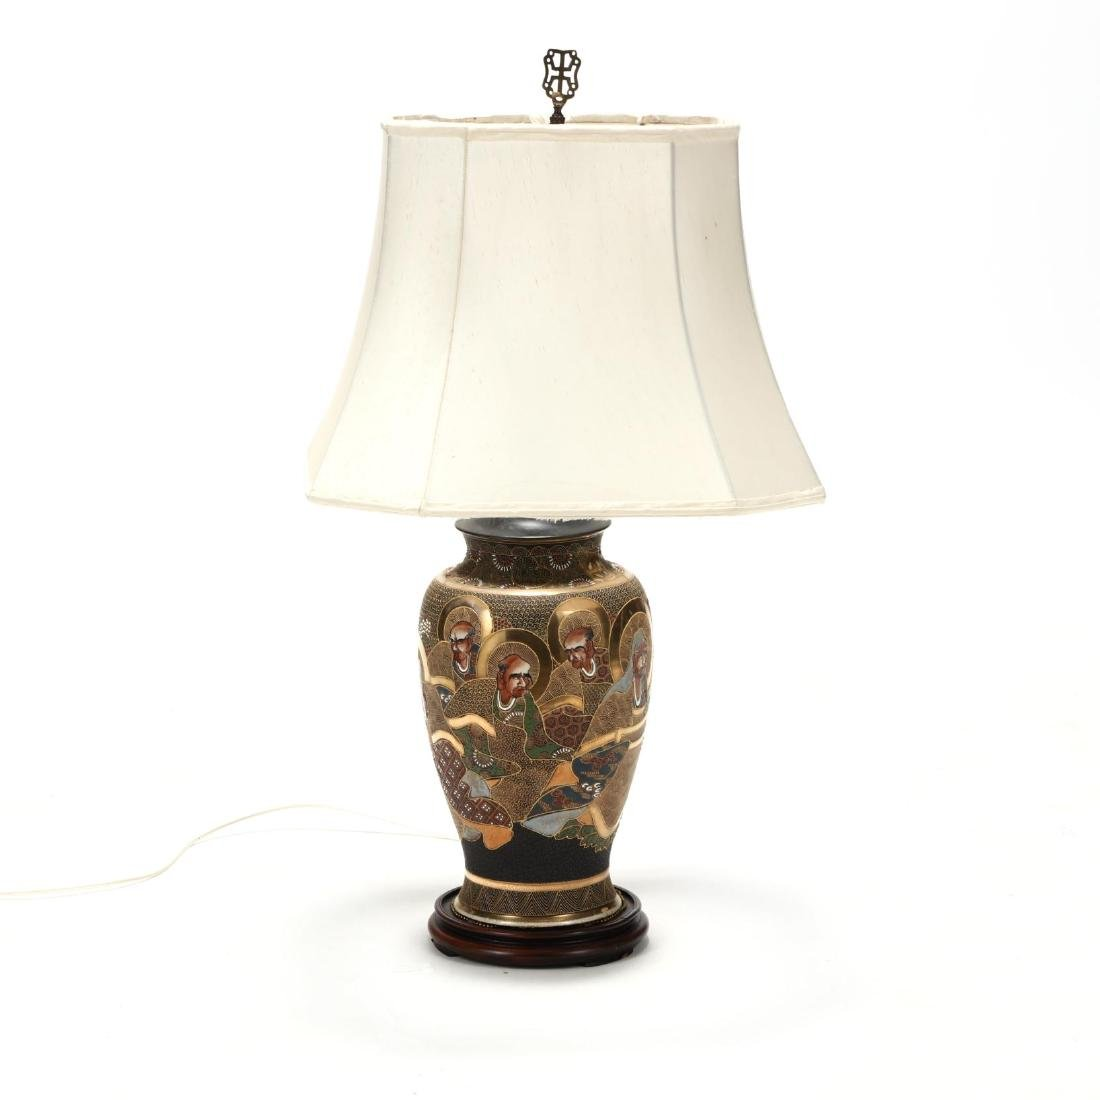 A Japanese Moriage Porcelain Table Lamp